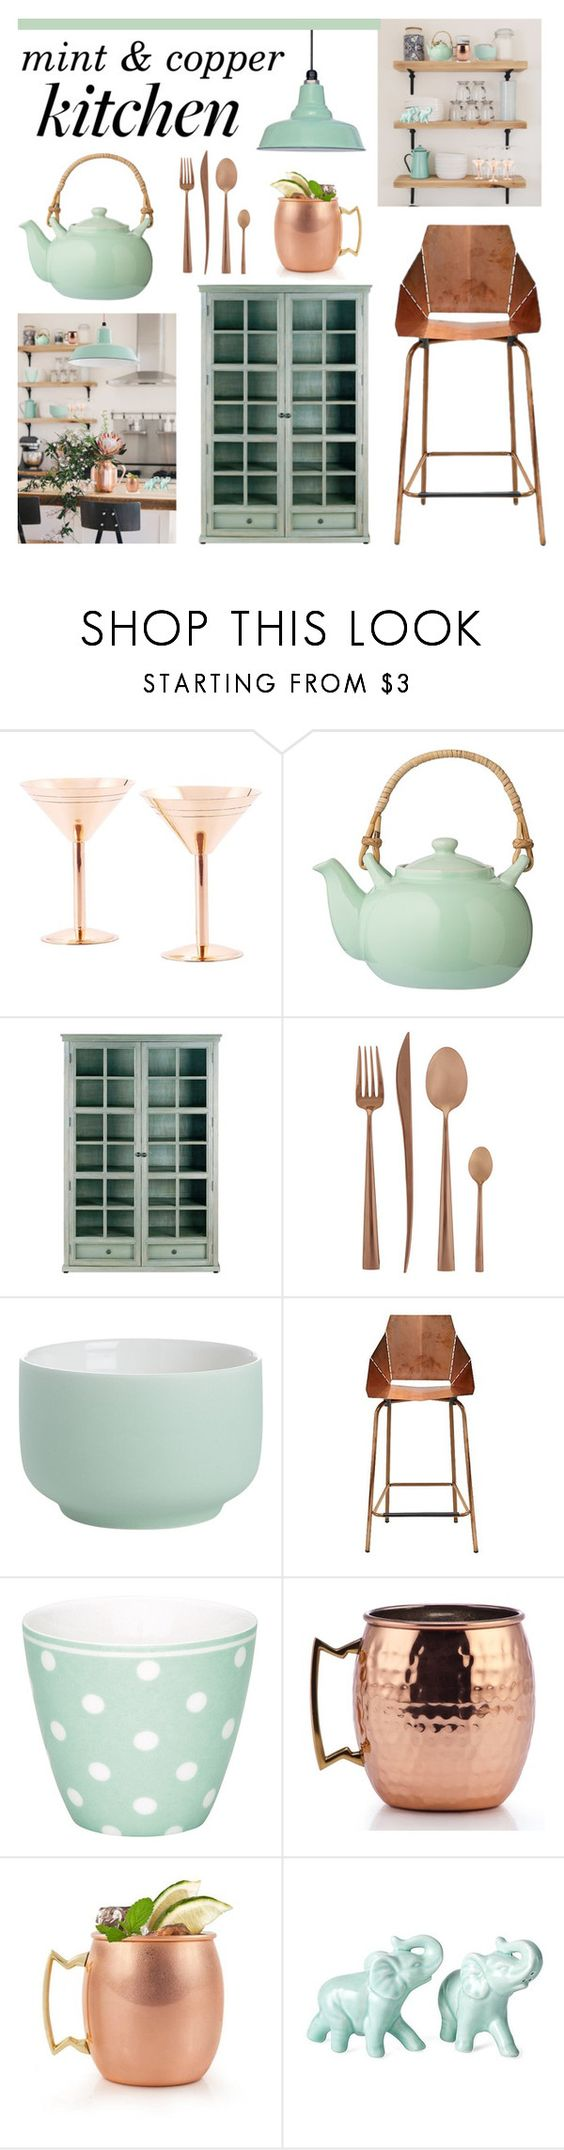 Home decor collage from january 2017 featuring currey company -  Polyvore Featuring Interior Interiors Interior Design Home Home Decor Interior Decorating Old Dutch Bloomingville Currey Company And Cutipol